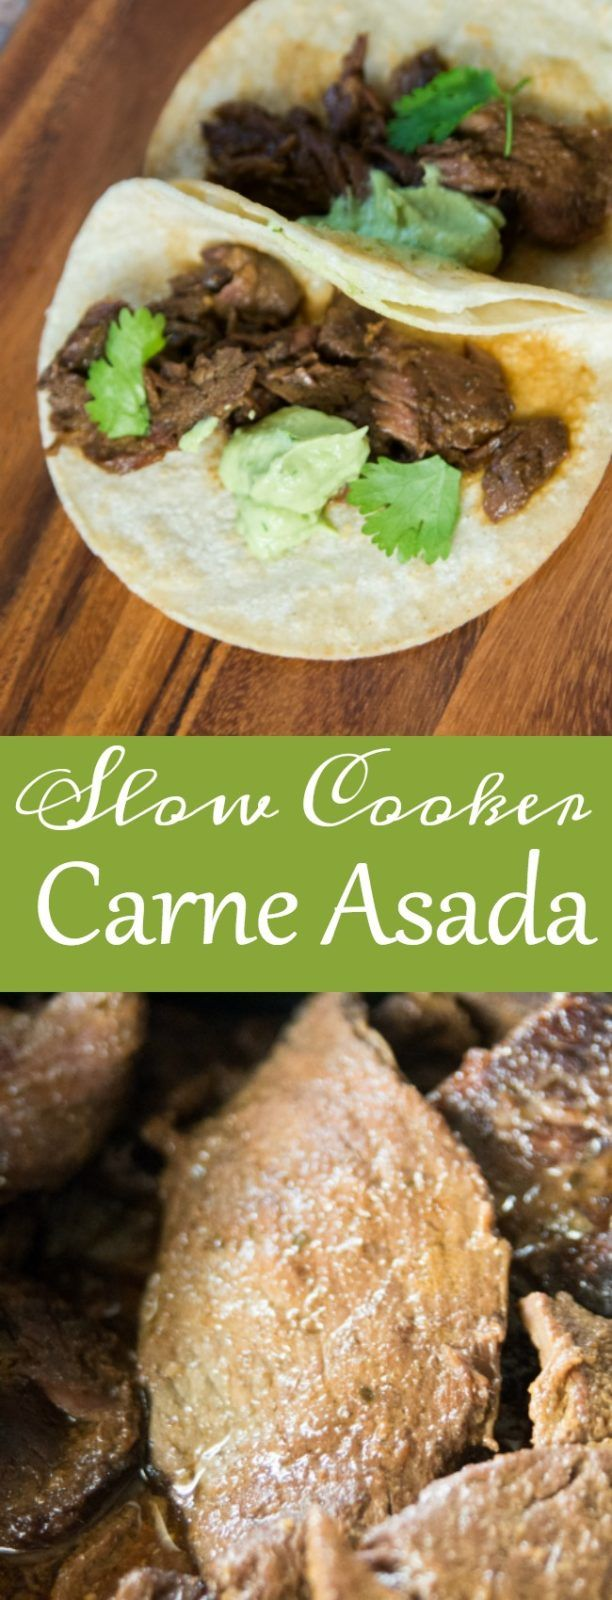 This slow cooker carne asada is so easy, and is so authentic tasting!